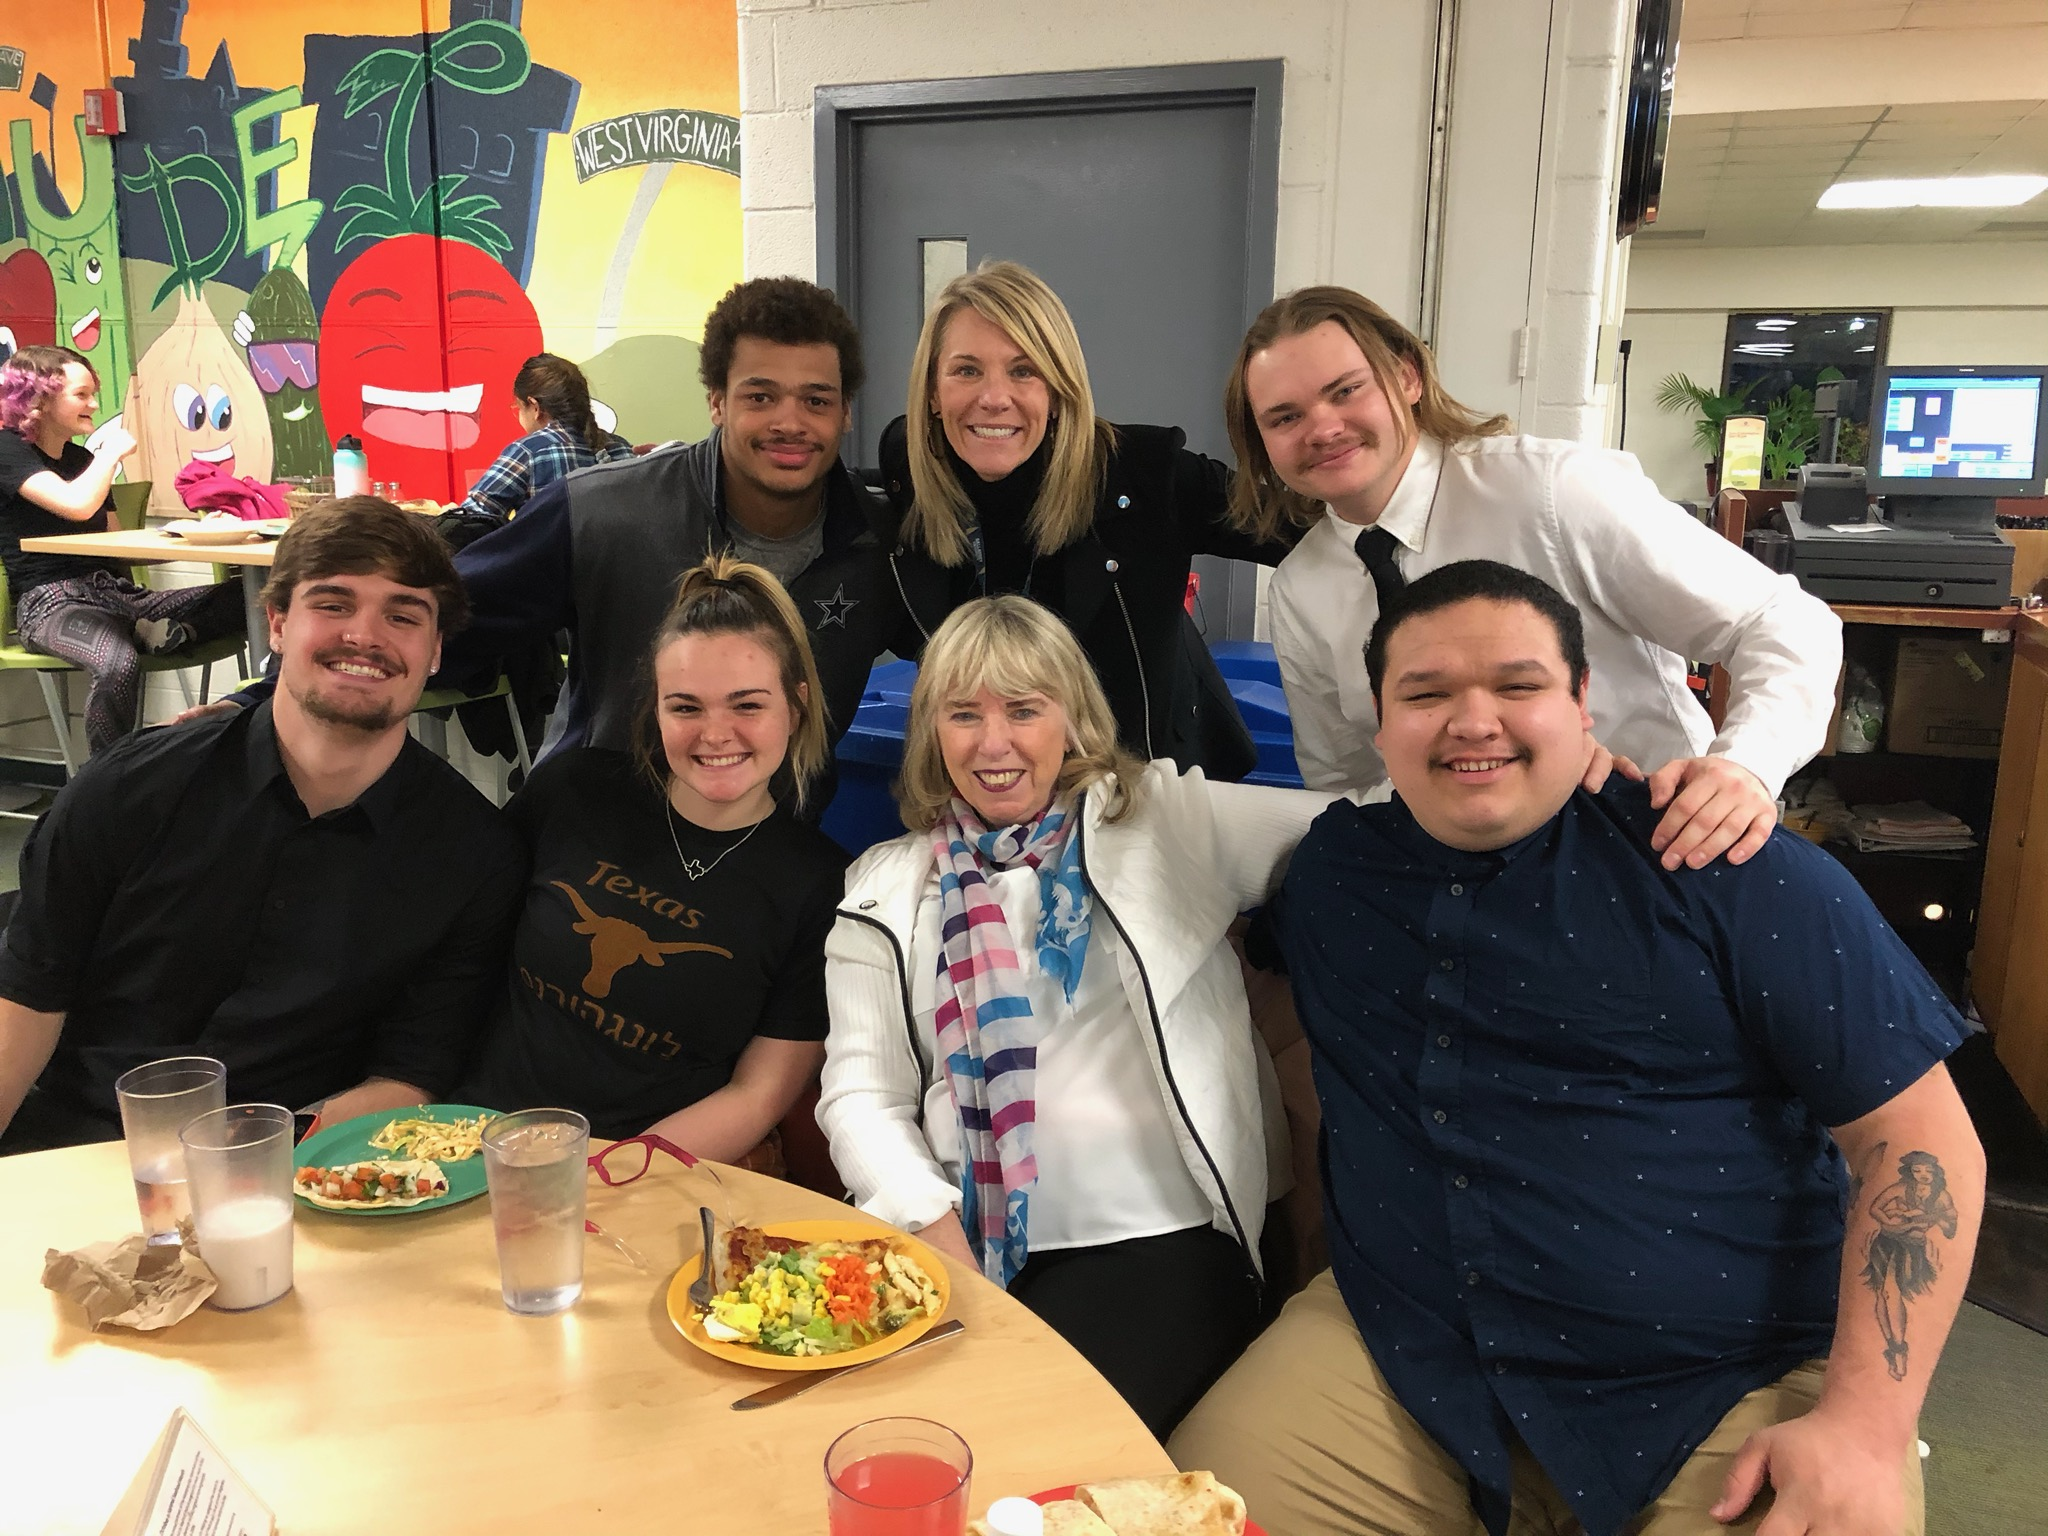 TSD Alumni at Gaulladet cafeteria with Superintendent Bugen